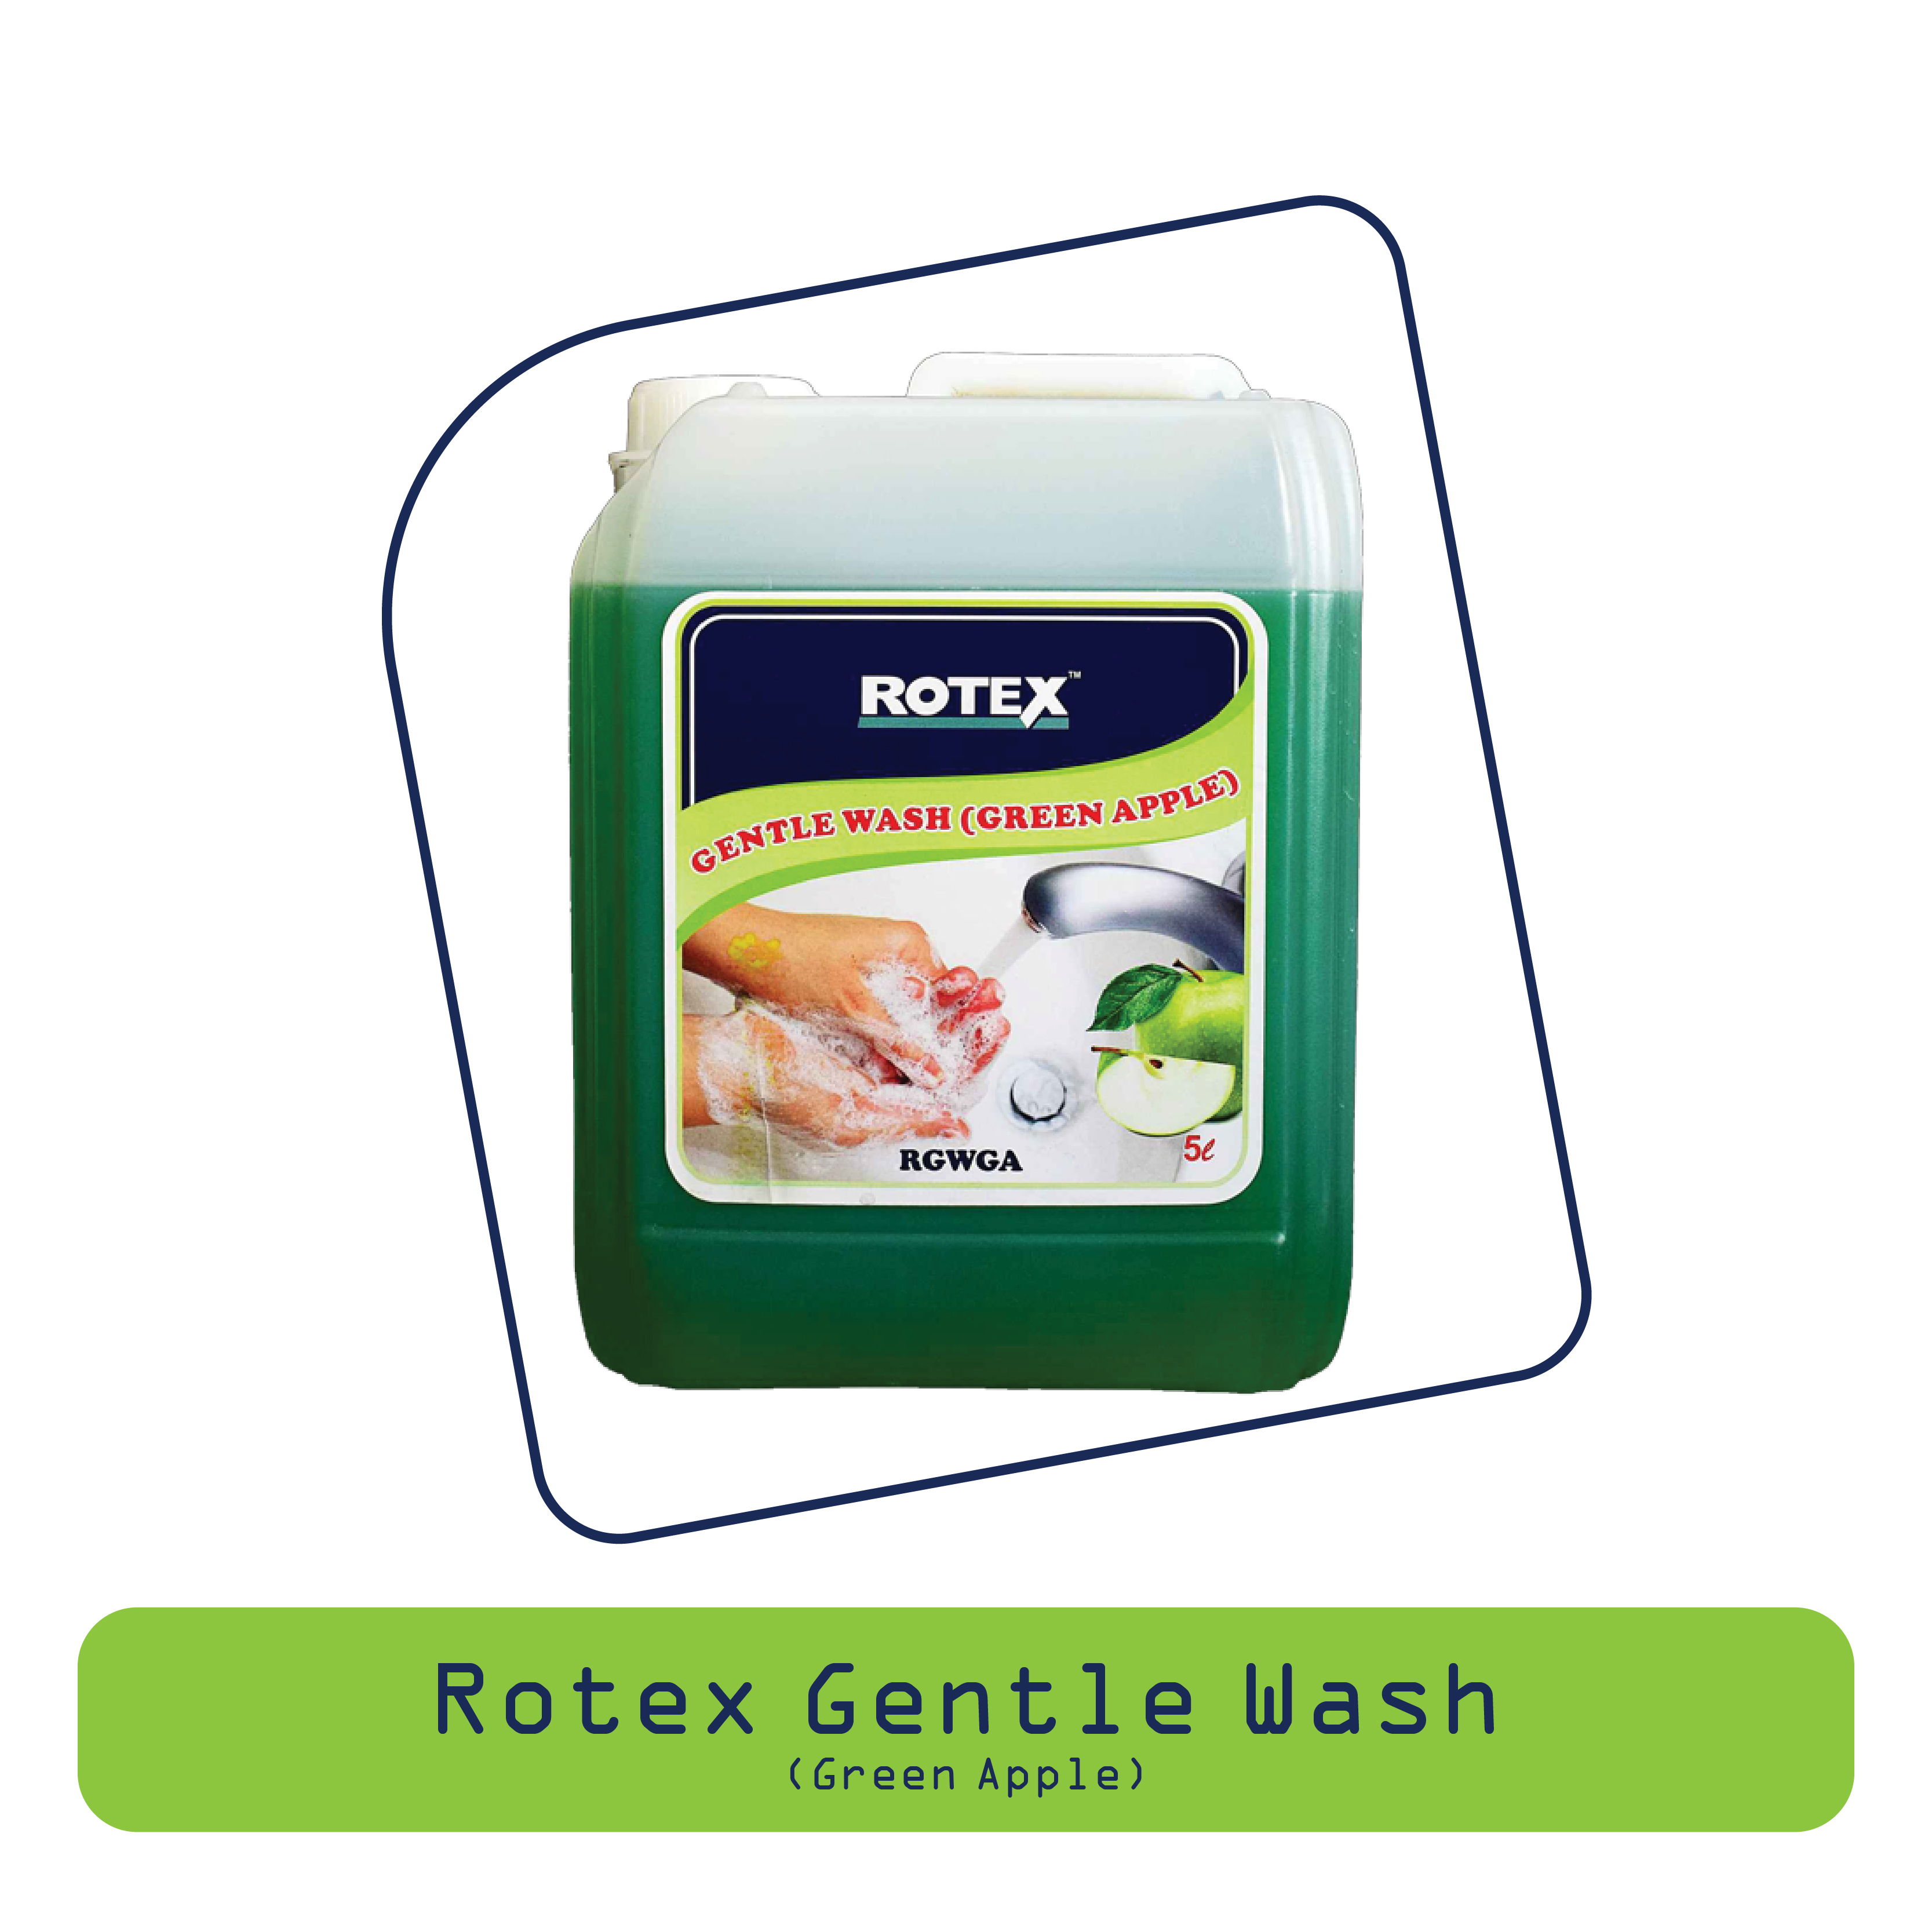 Rotex Gentle Wash ( Green Apple)